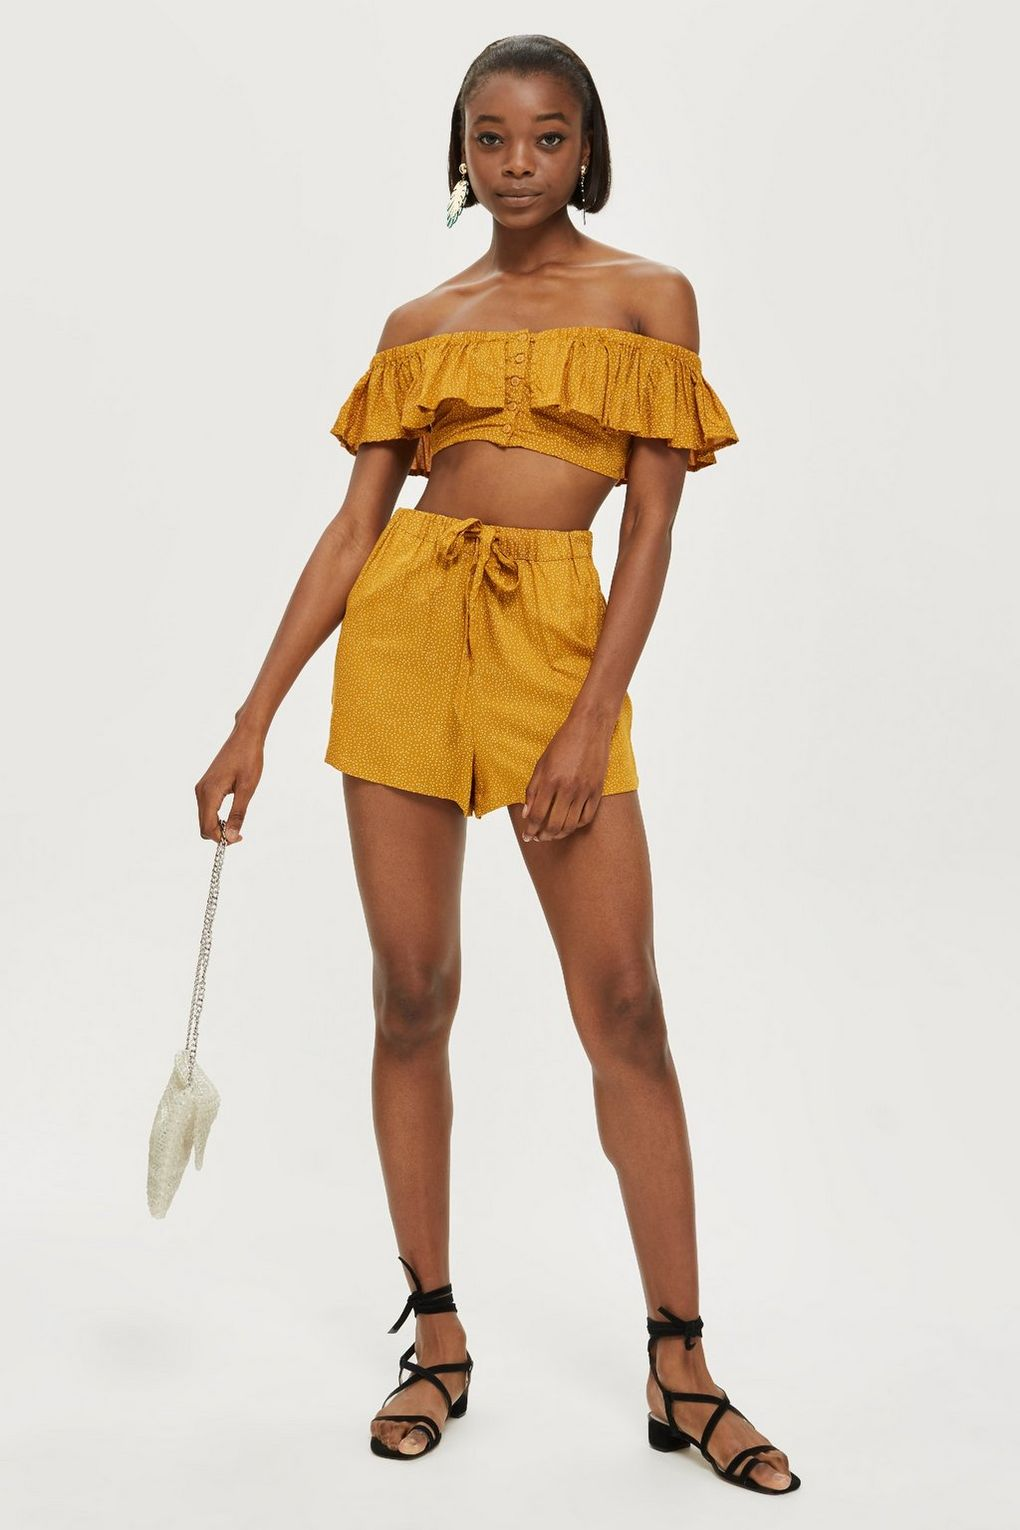 ed5e3cf0d0 Two-Piece Outfits To Shop During Summer - HelloGiggles